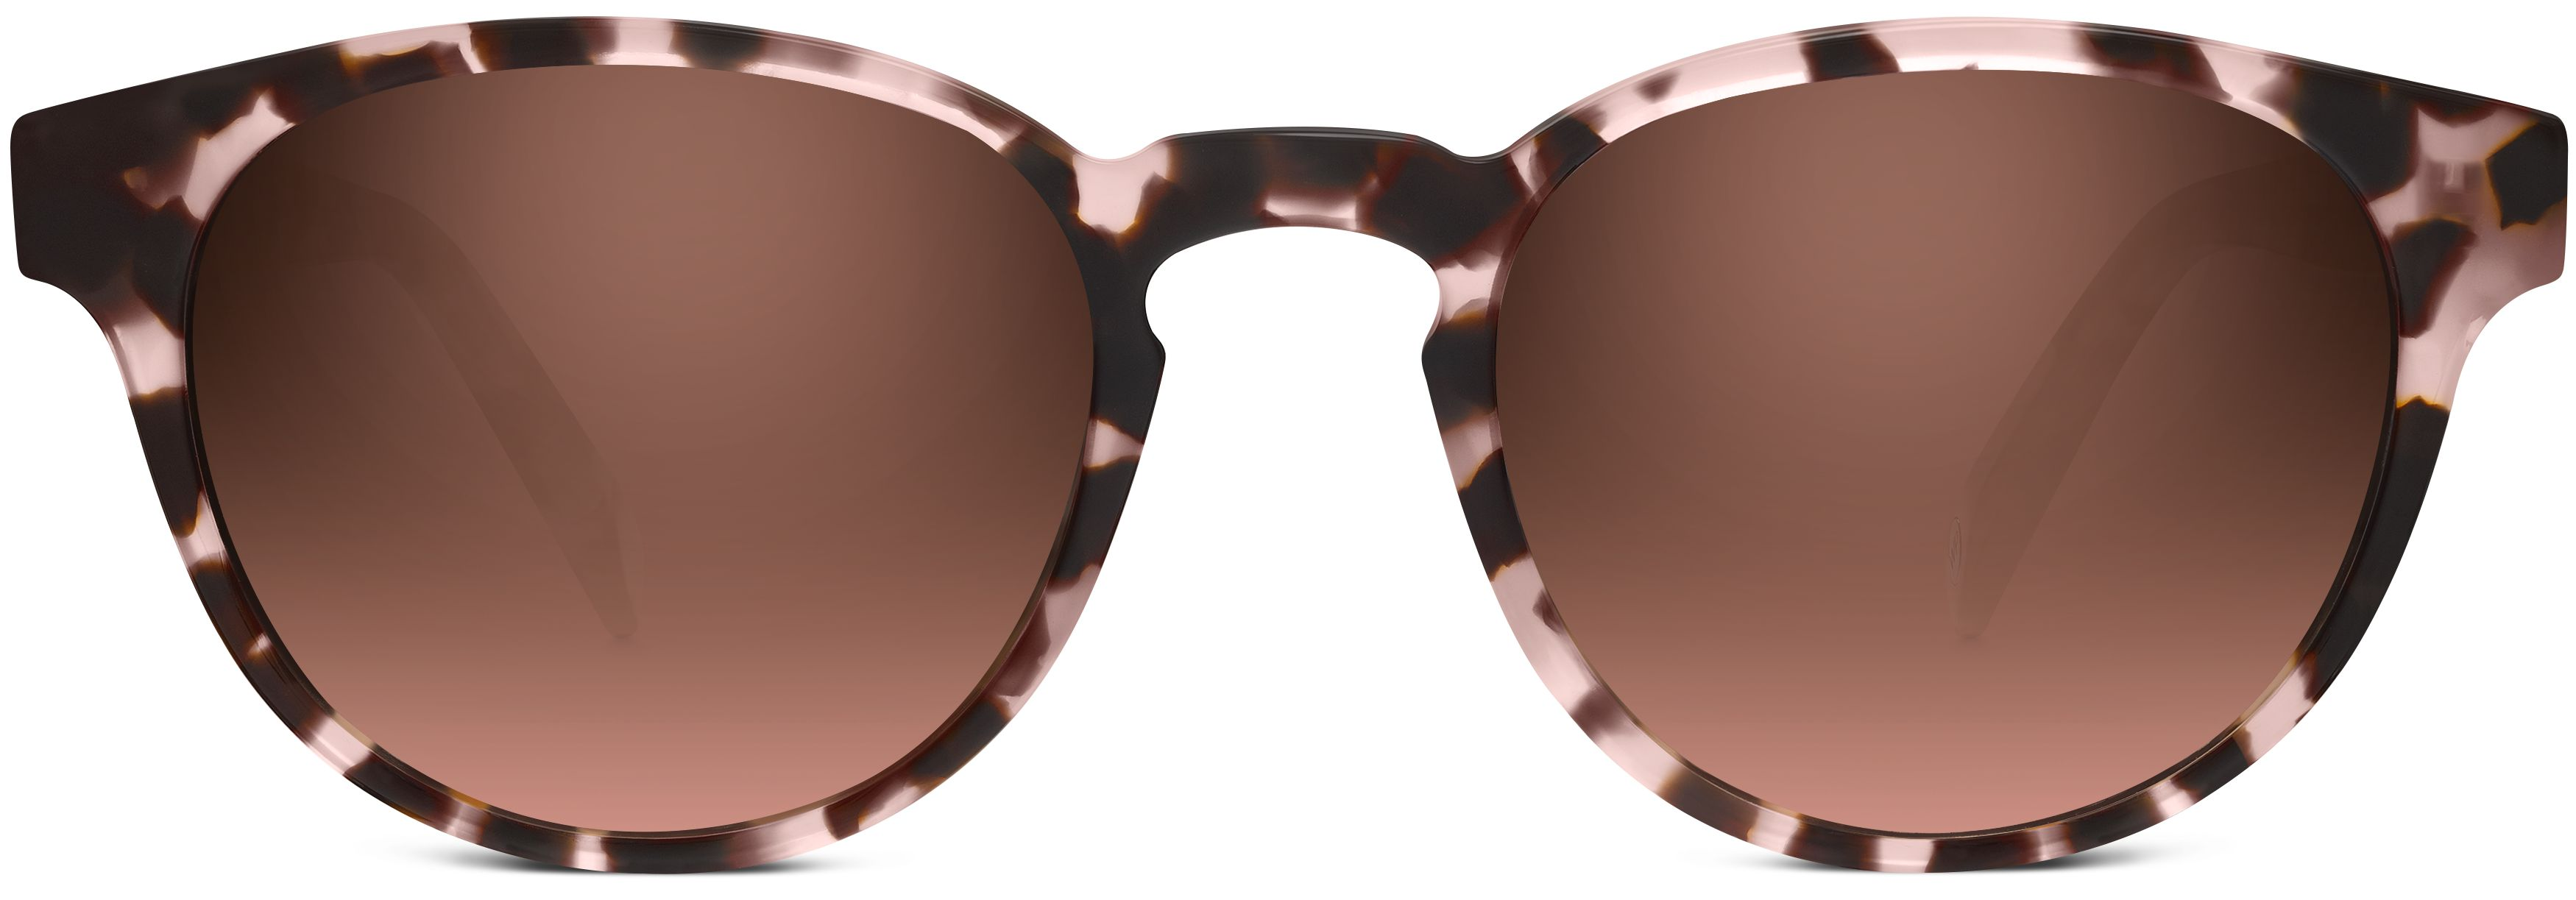 fafa920cf77ff Percey Sunglasses in Petal Tortoise with Flash Reflective Brown Gradient  lenses for Women